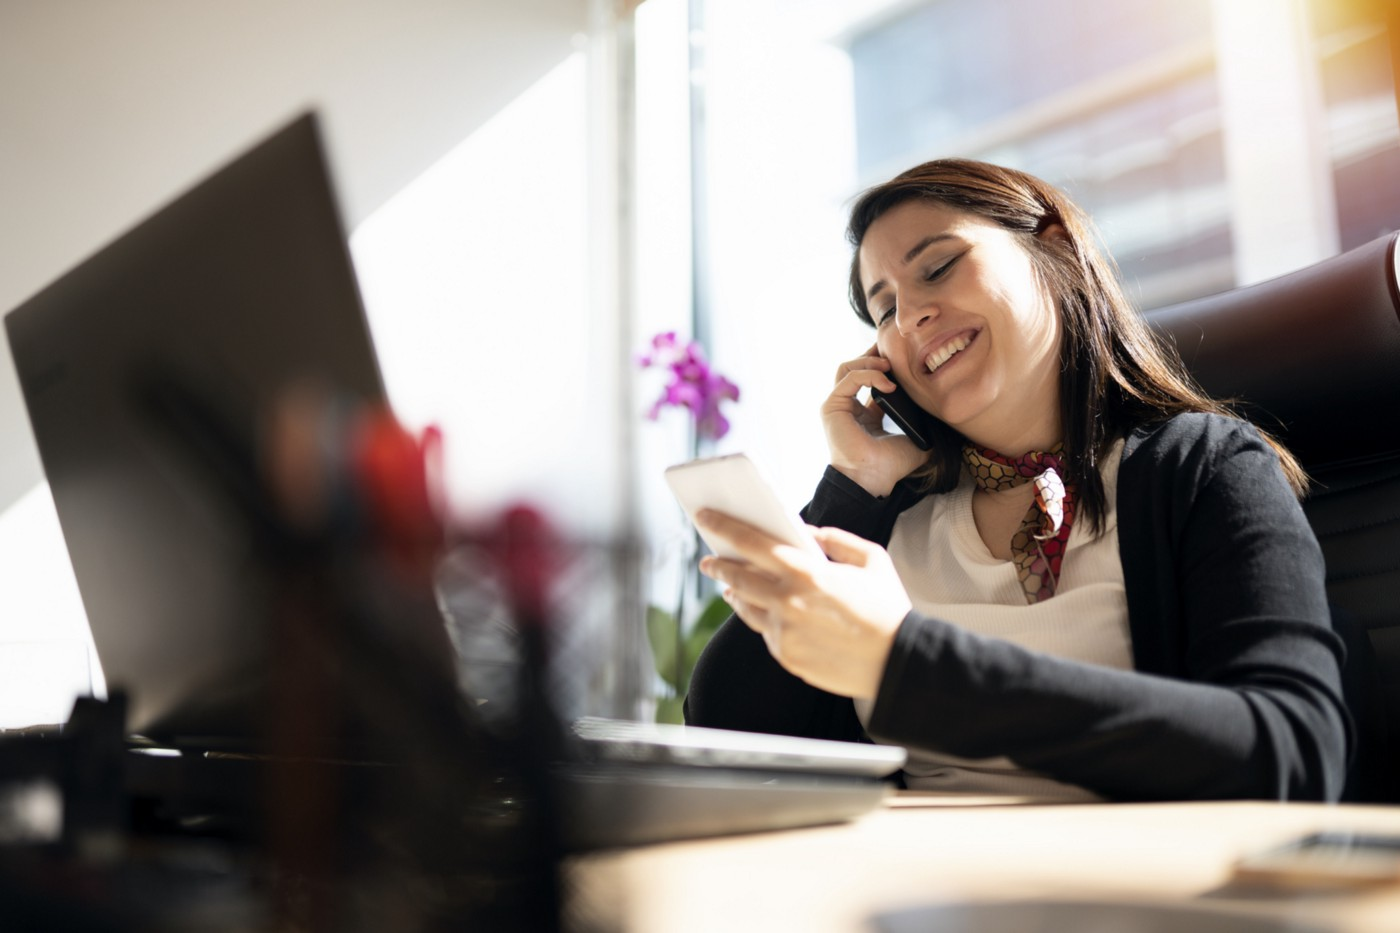 A photo of a smiling woman on the phone at her desk in front of her computer.